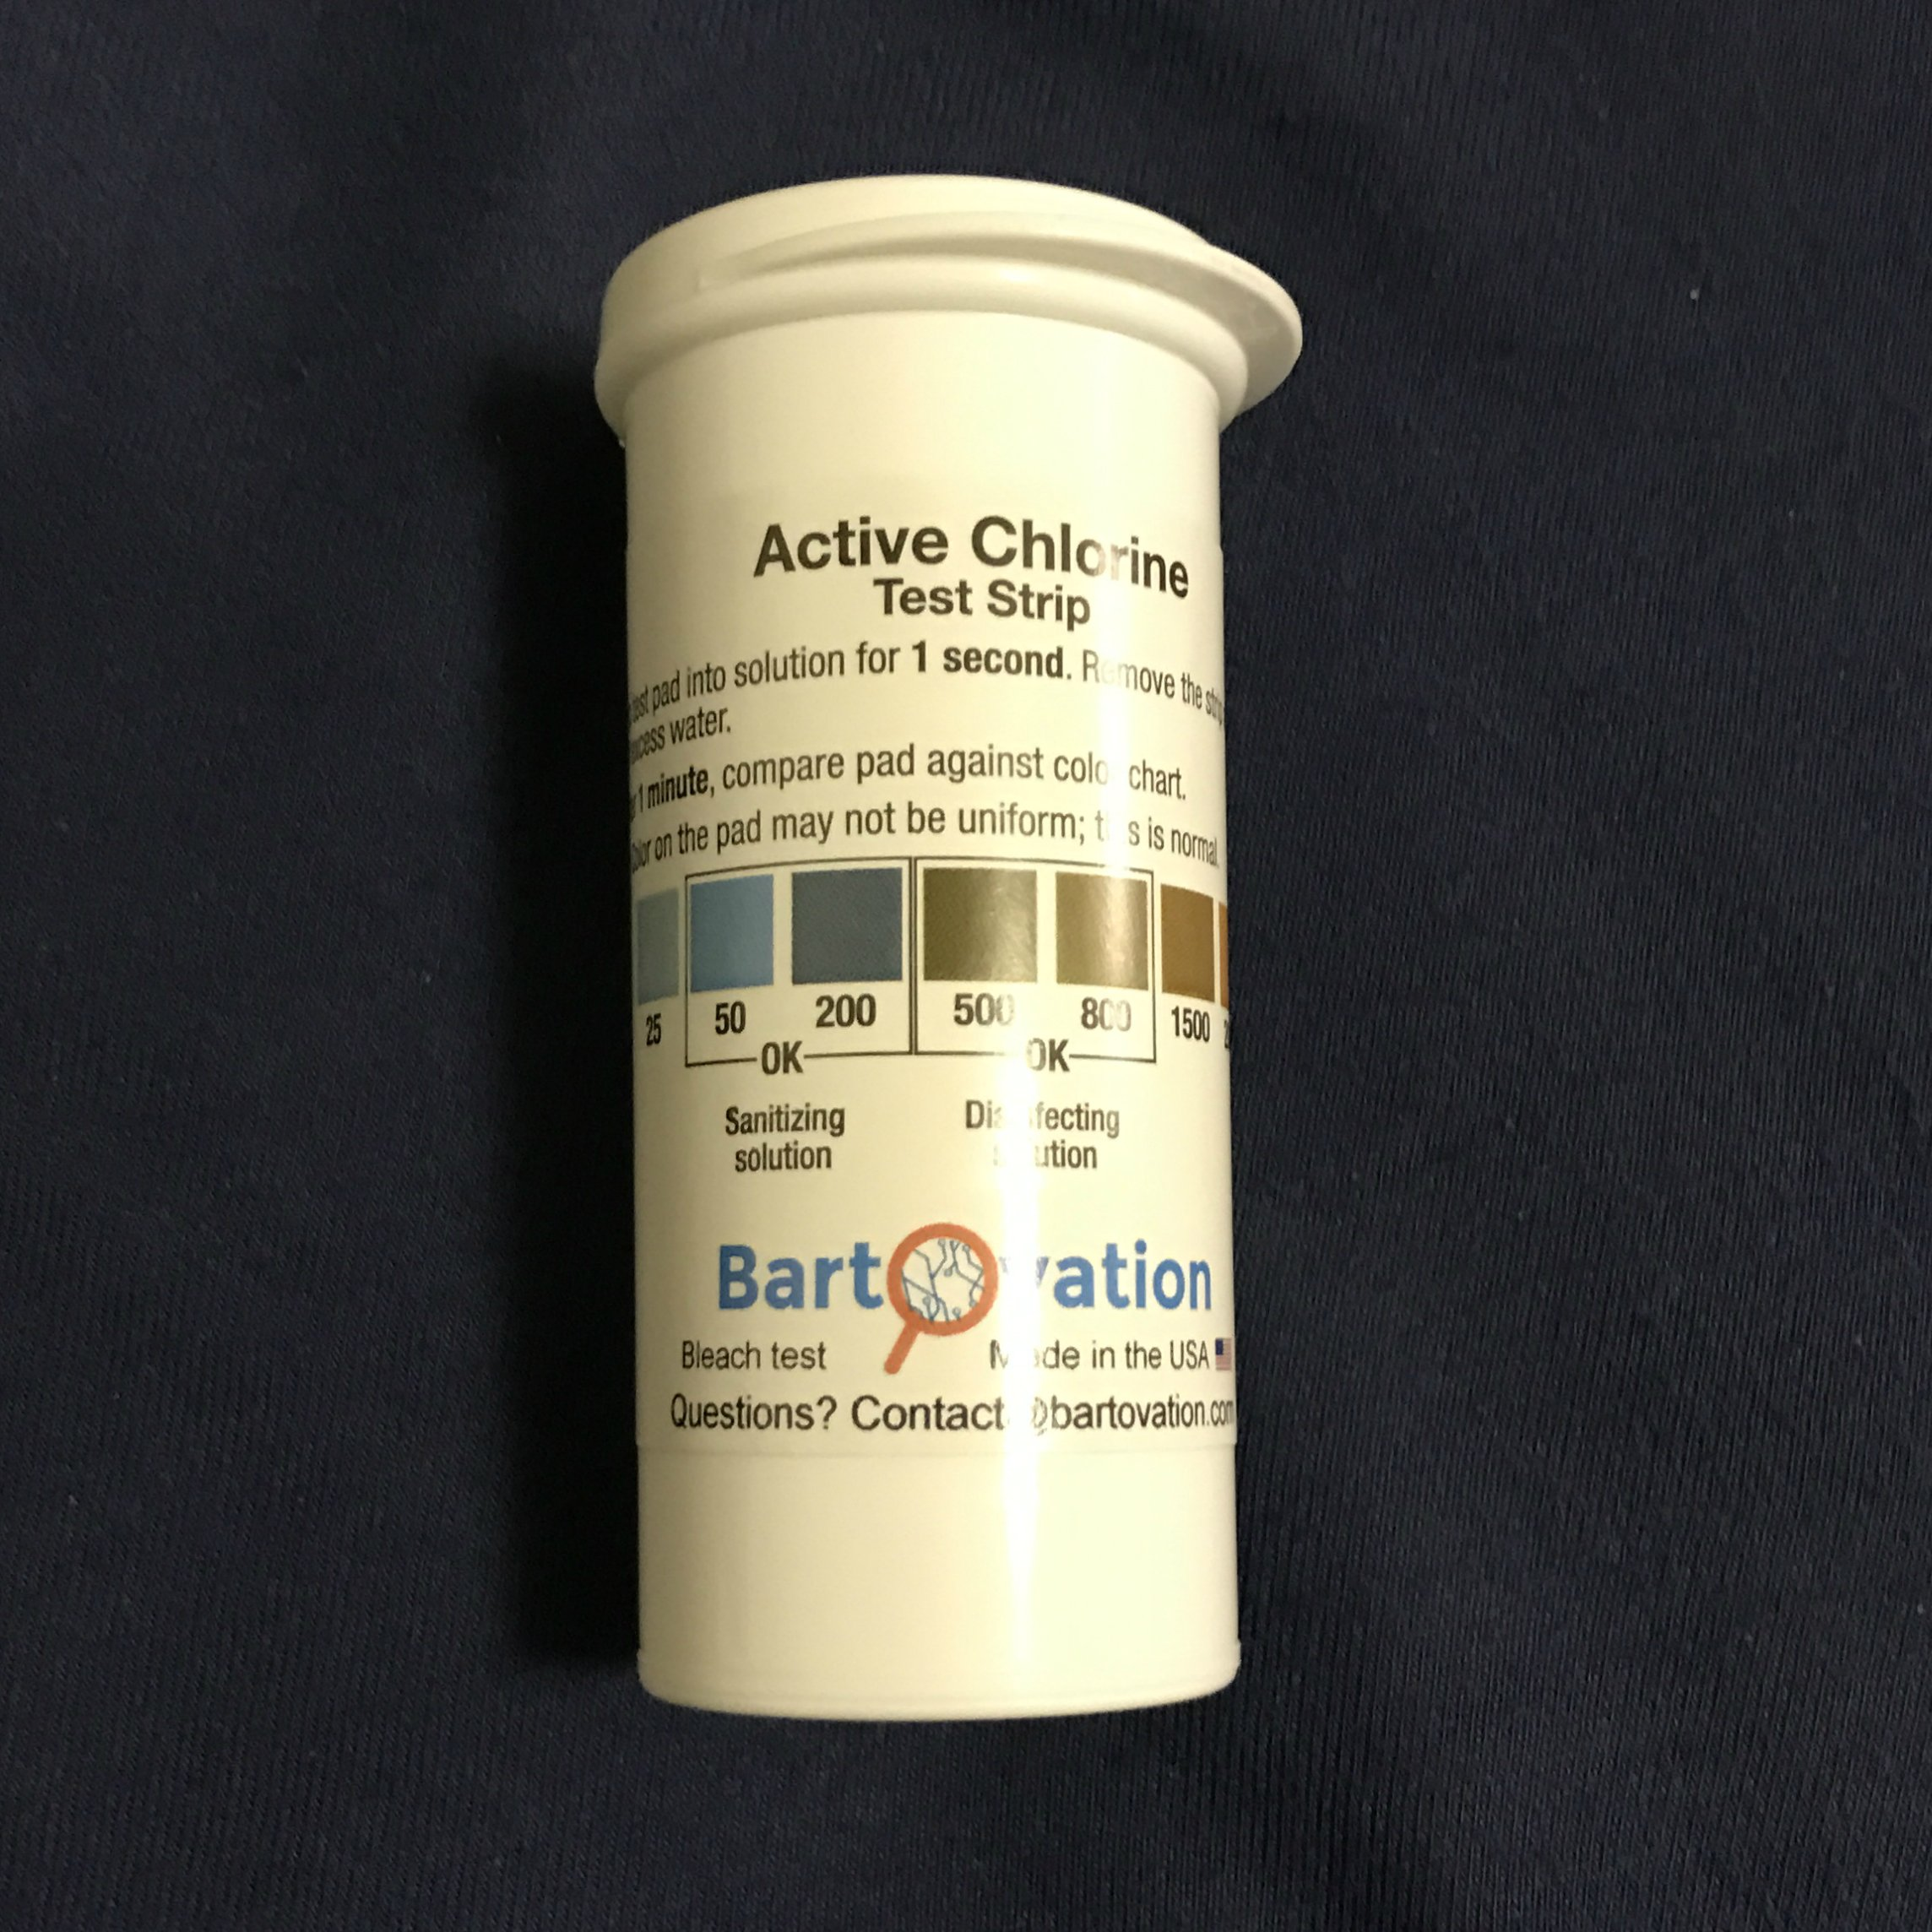 100 PK Plastic Active Chlorine Bleach Test Strip, High Level Up to 2000ppm for Sanitizers and Disinfectants Designed for DAYCARES & Senior Homes!